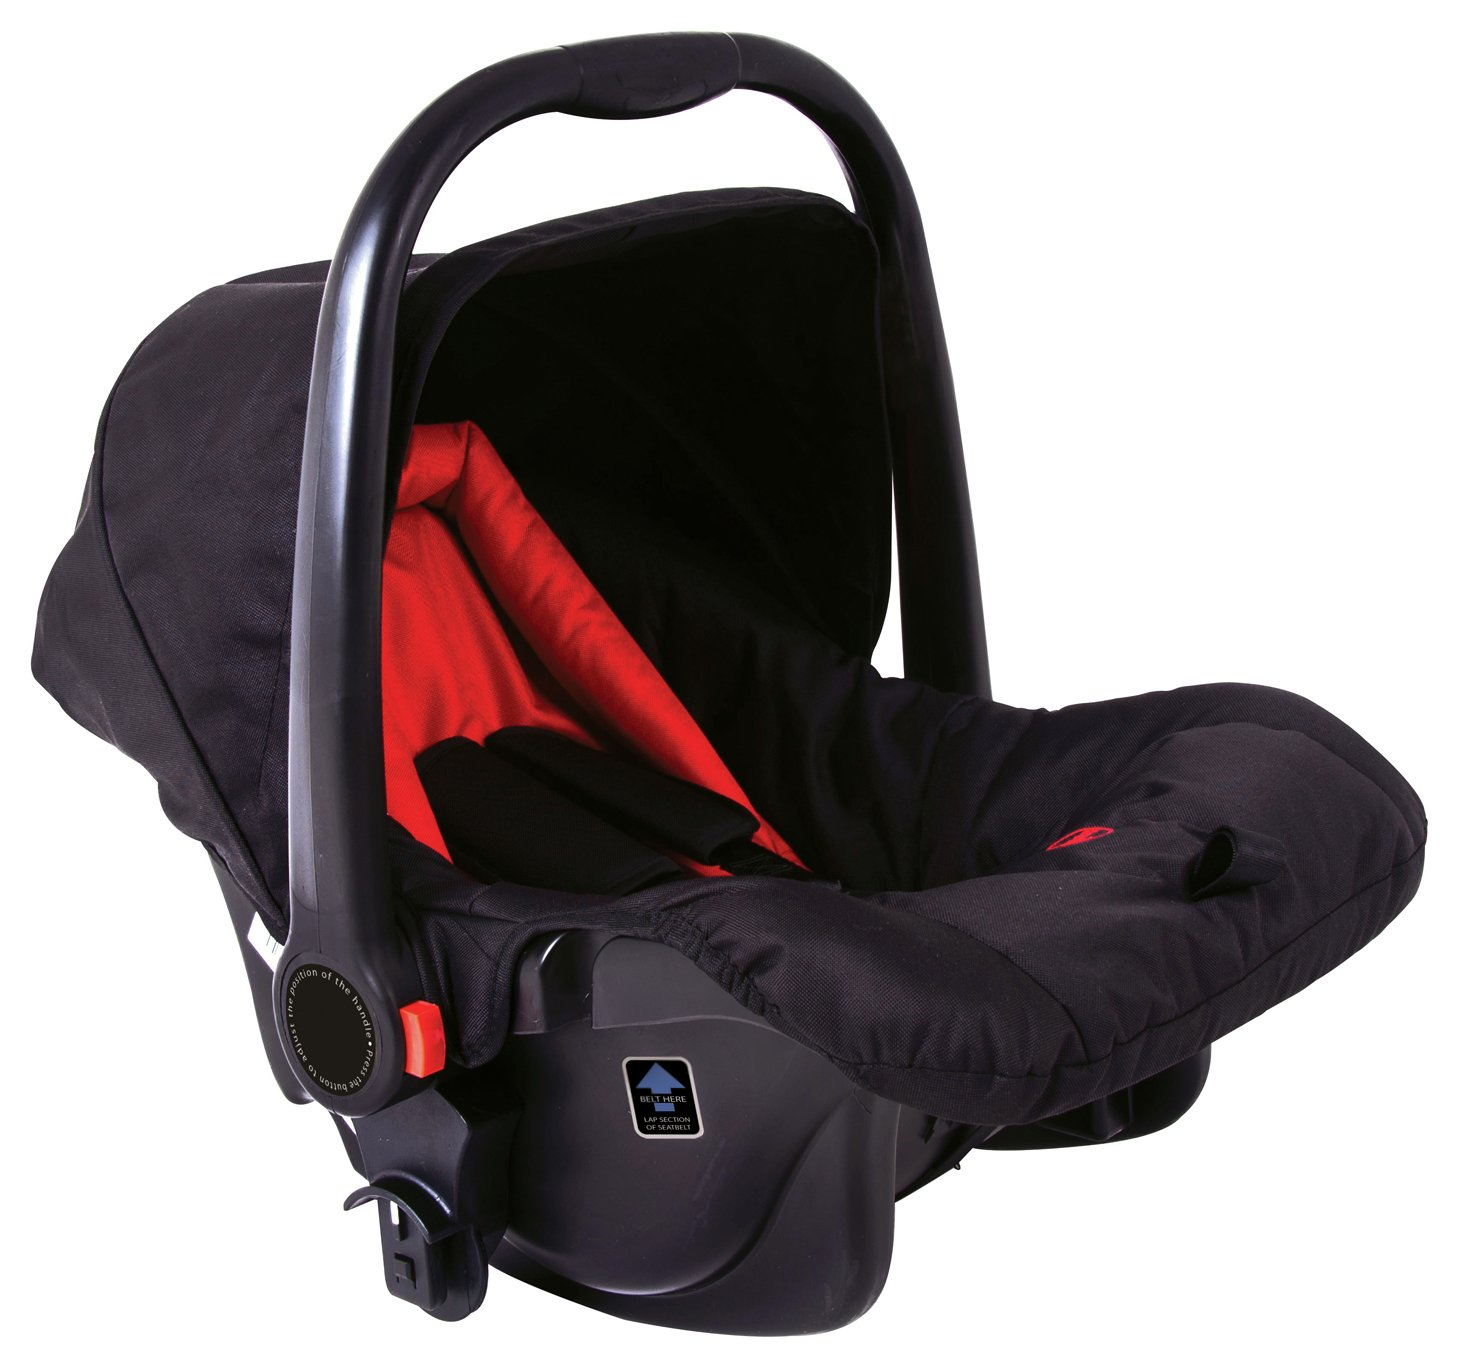 MyChild Easy Twin Infant Carrier Car Seat.